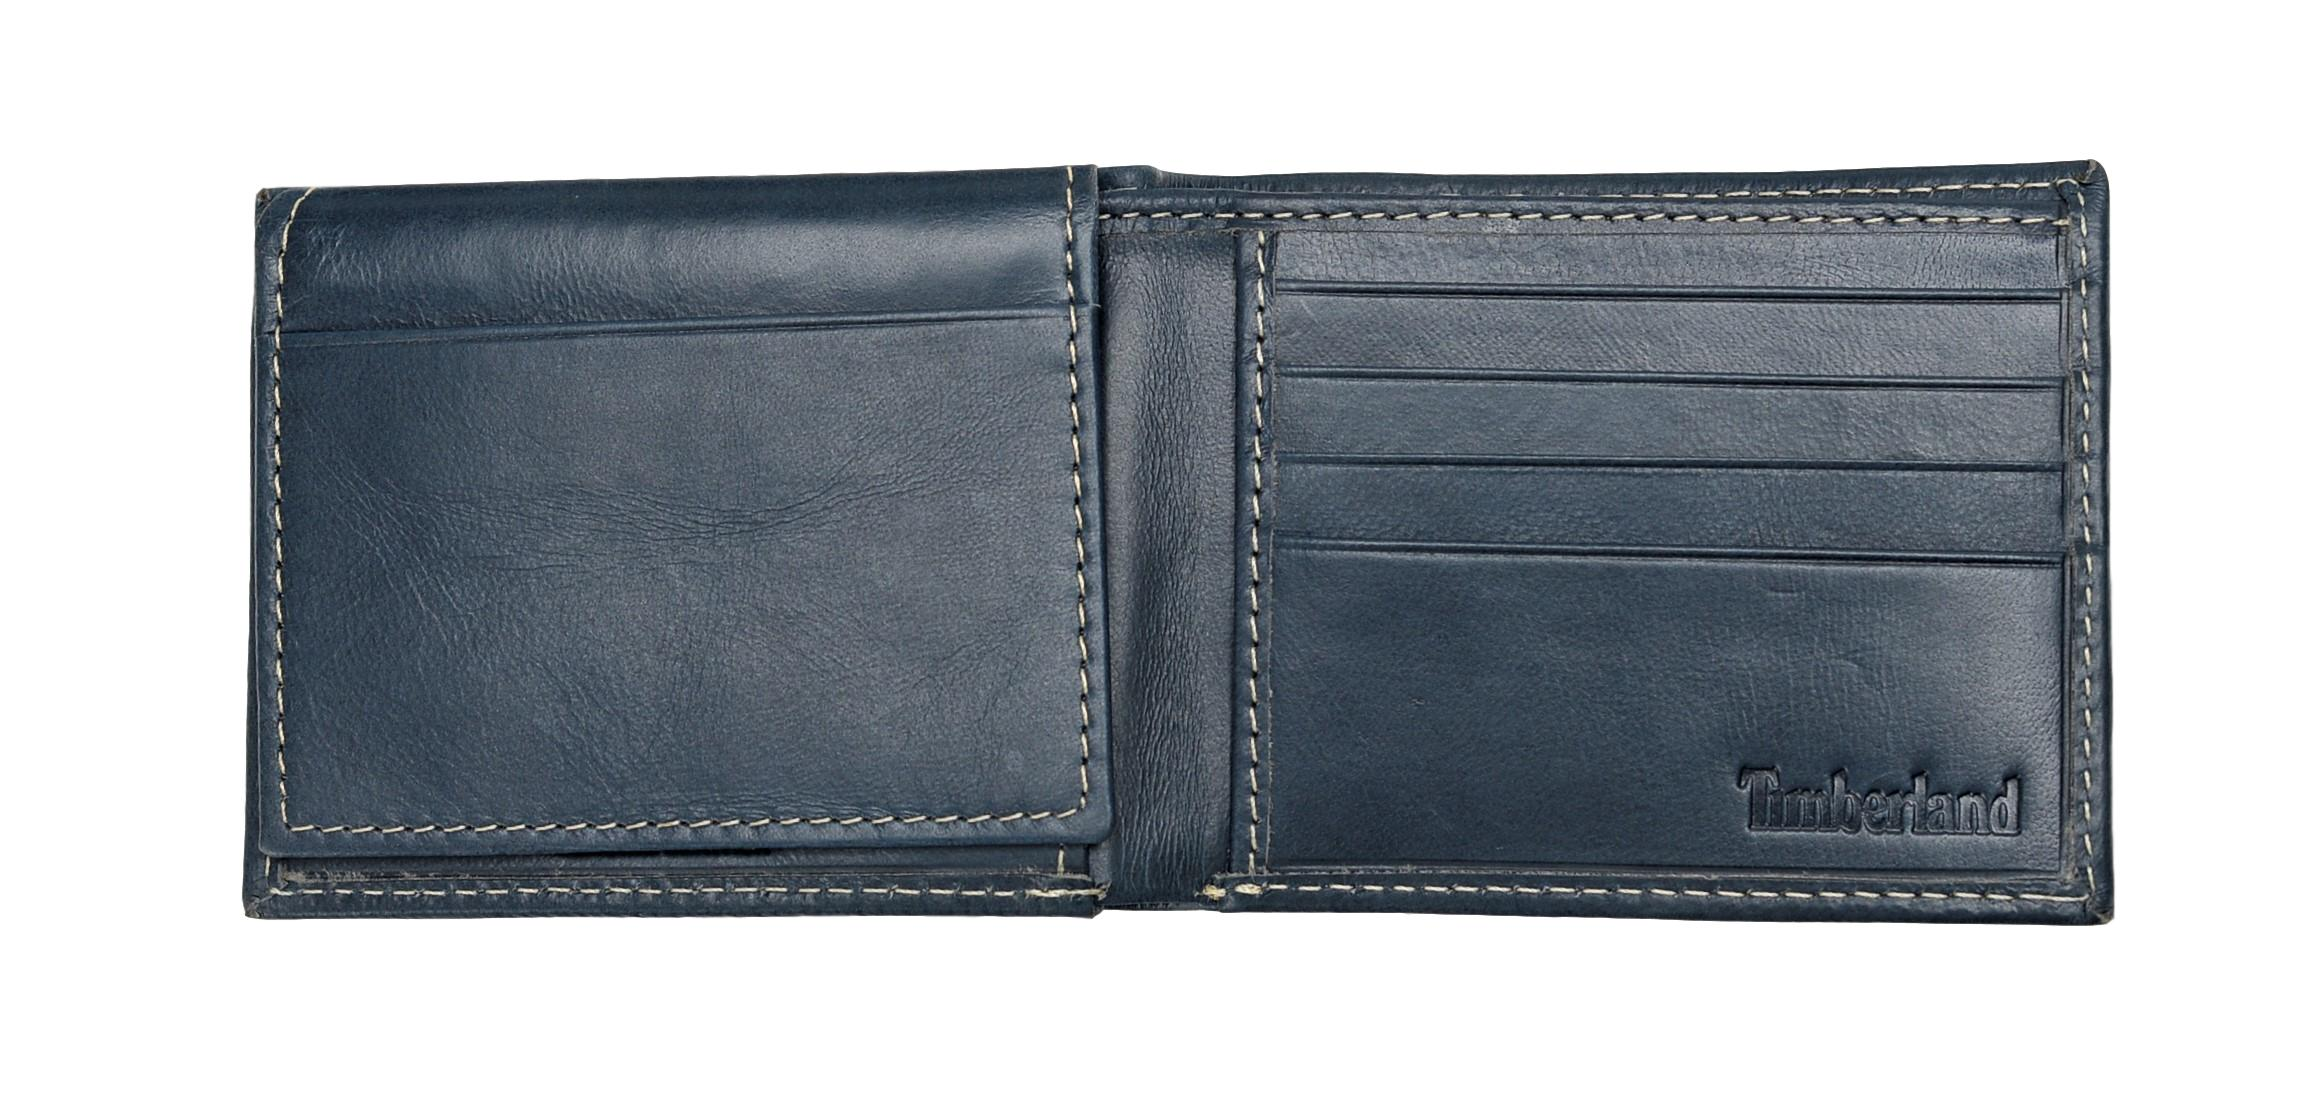 Timberland-Men-039-s-Genuine-Leather-Cloudy-Passcase-Wallet